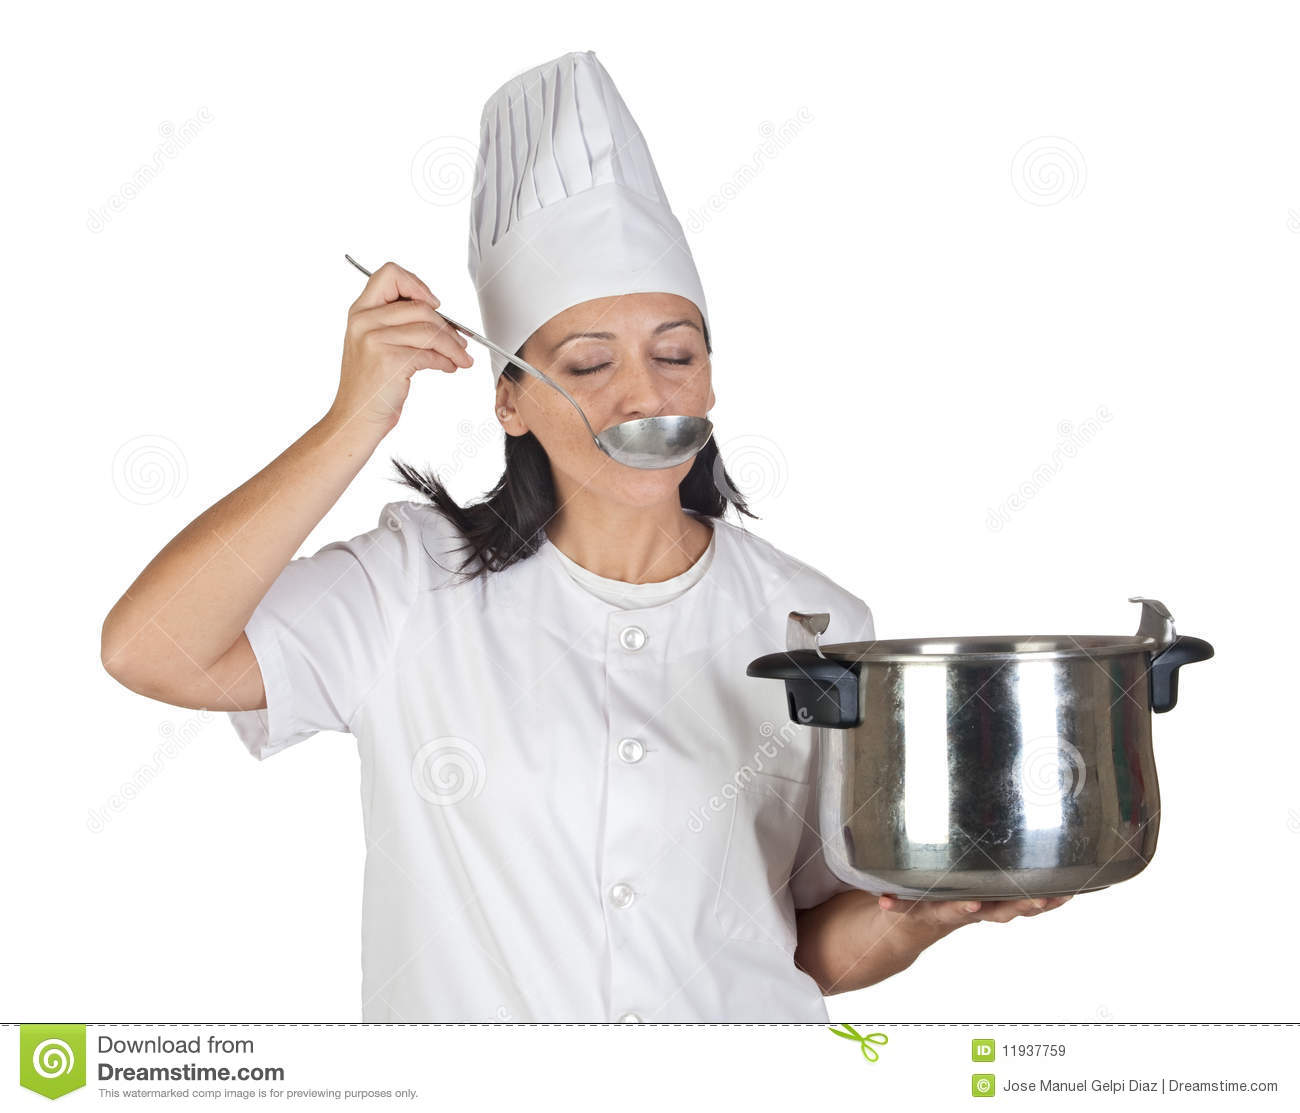 how to cook balenos meal